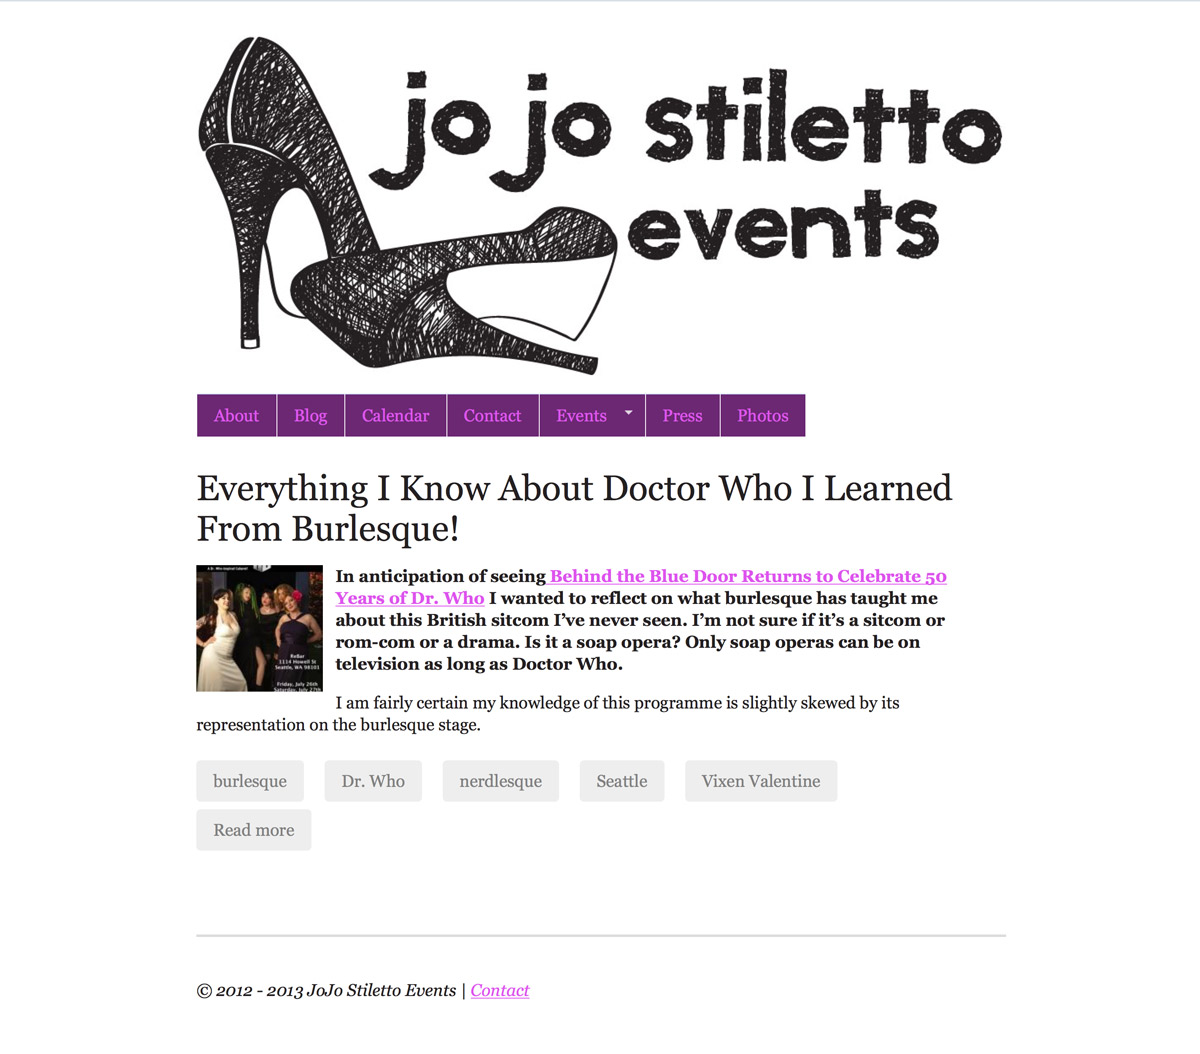 jojostiletto_original_site